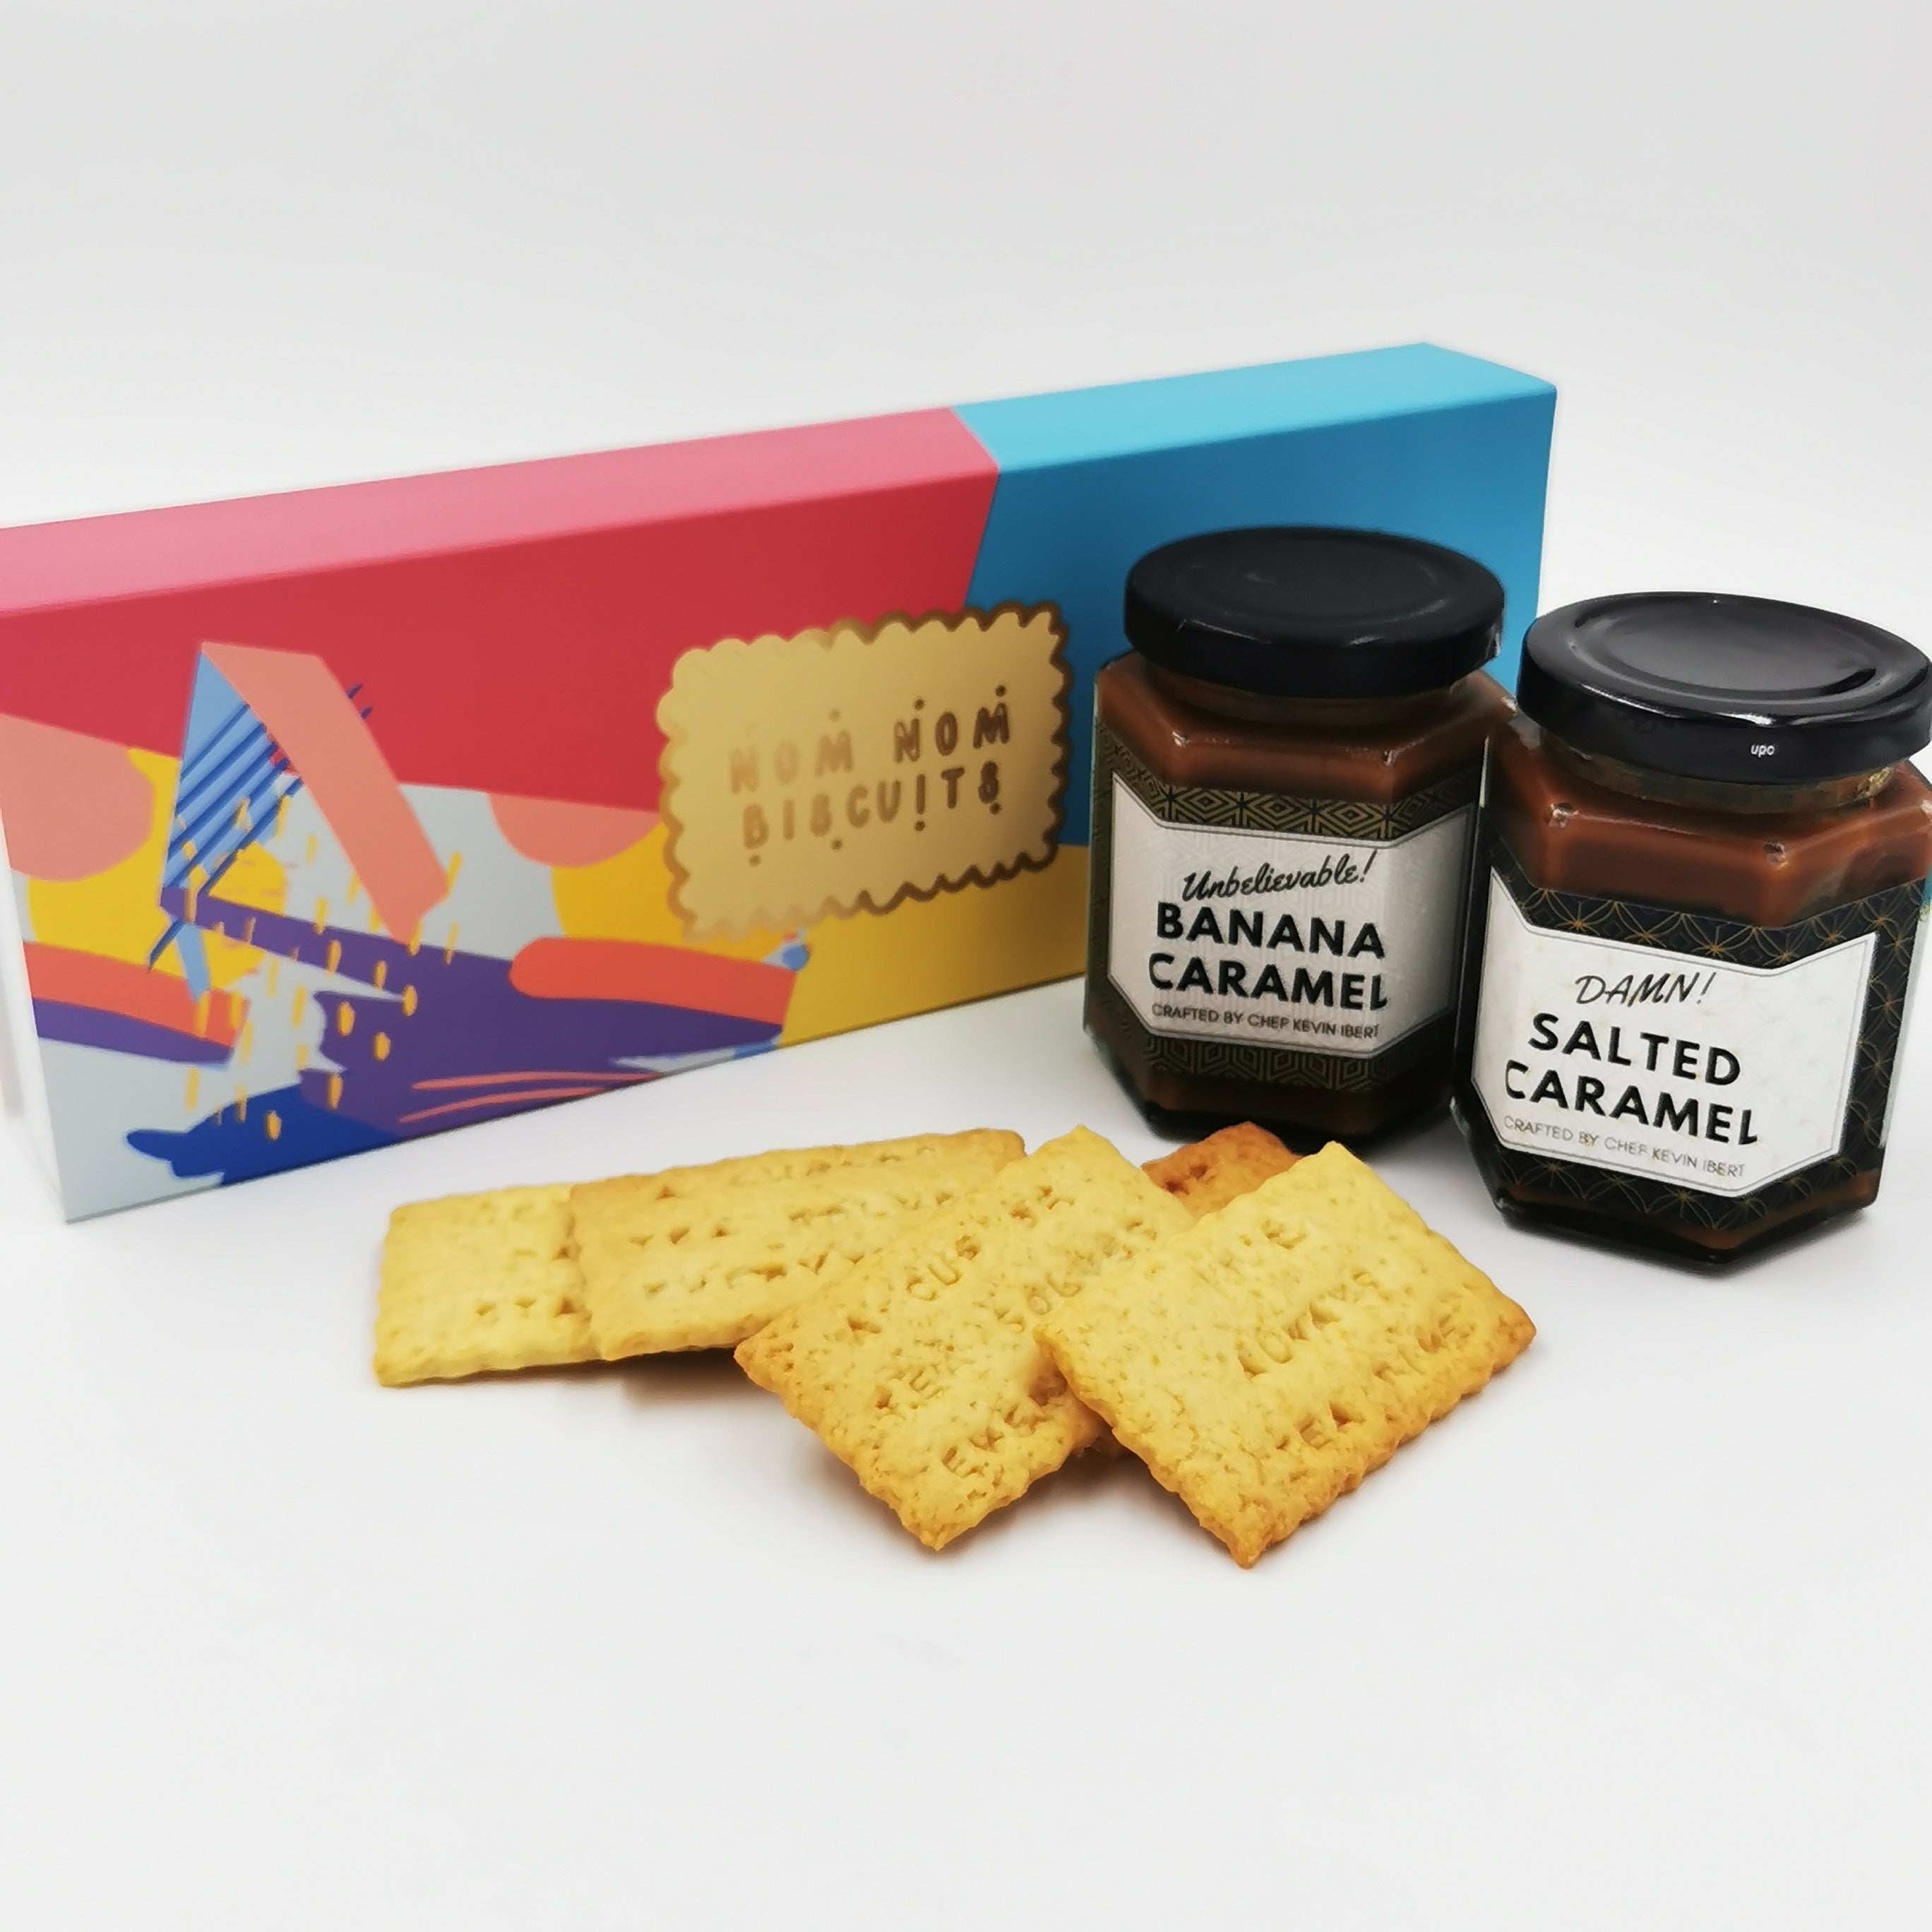 Nomnom Biscuits & Spreads Gift Set